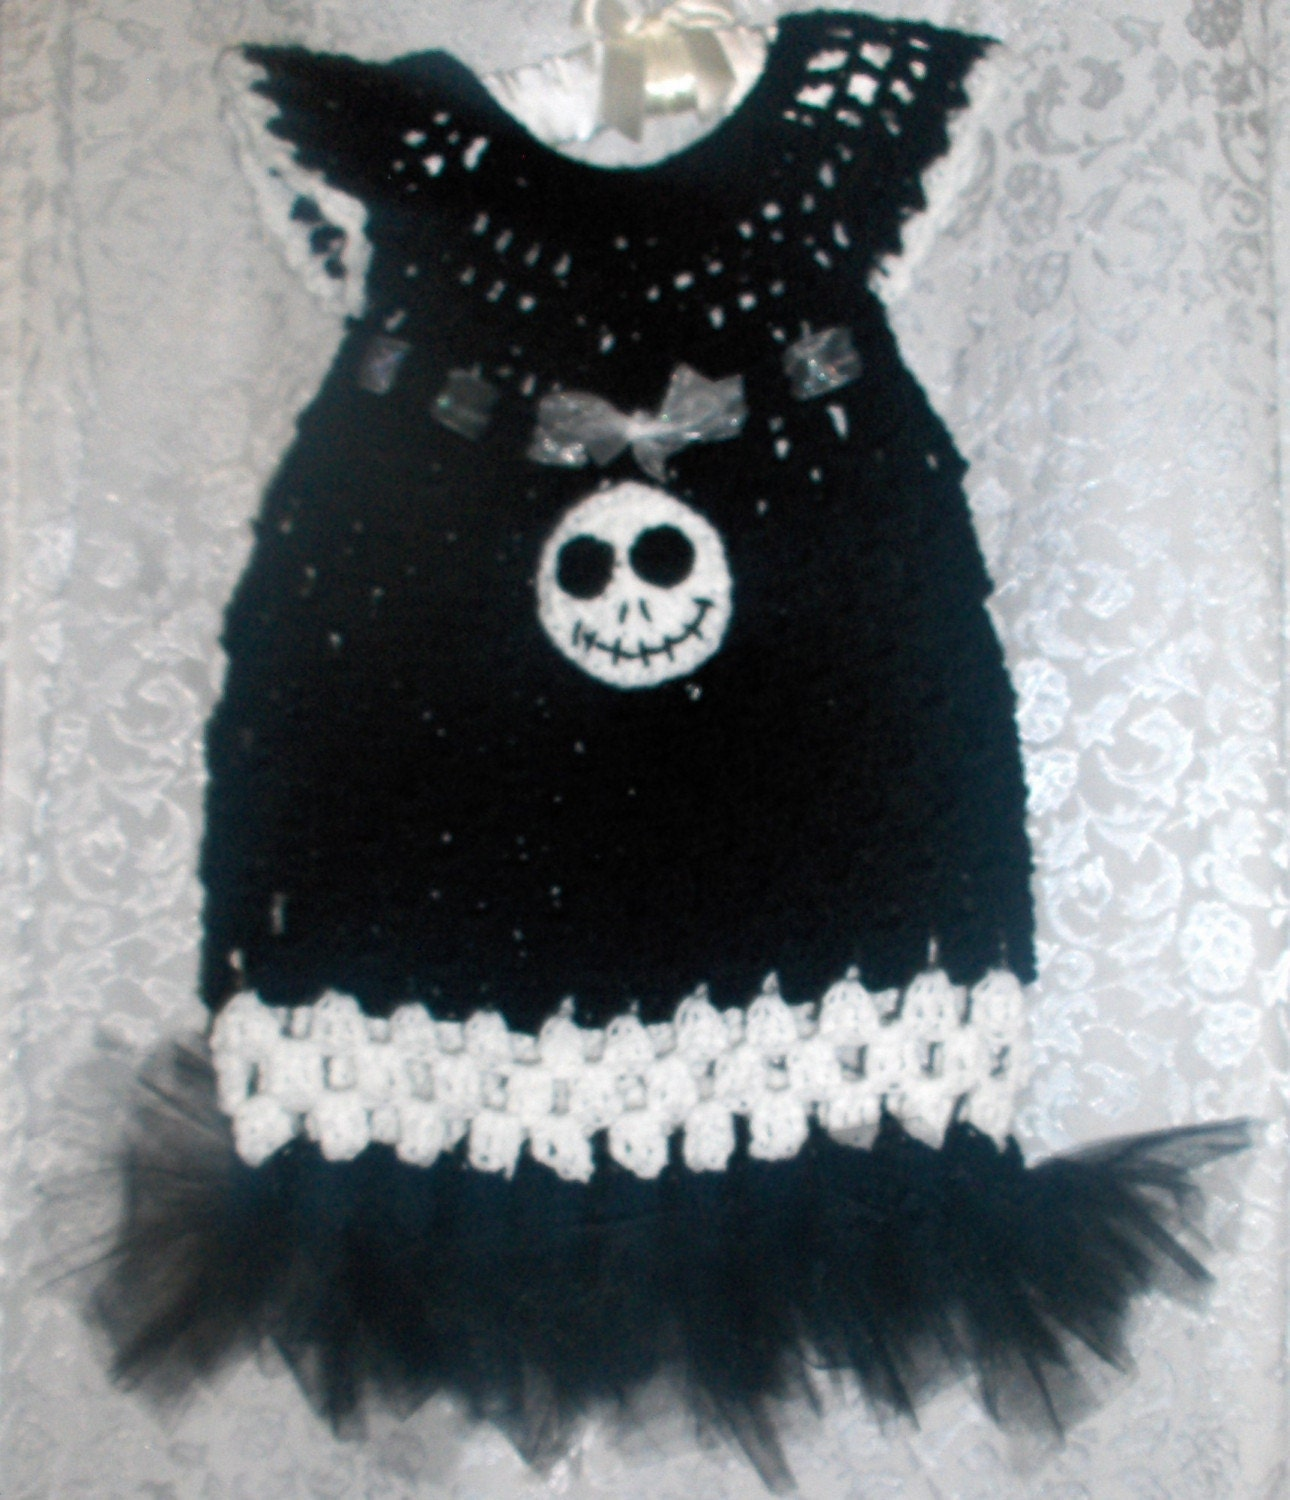 Handmade Crochet Dress Jack Skellington with tutu by NattyHatty